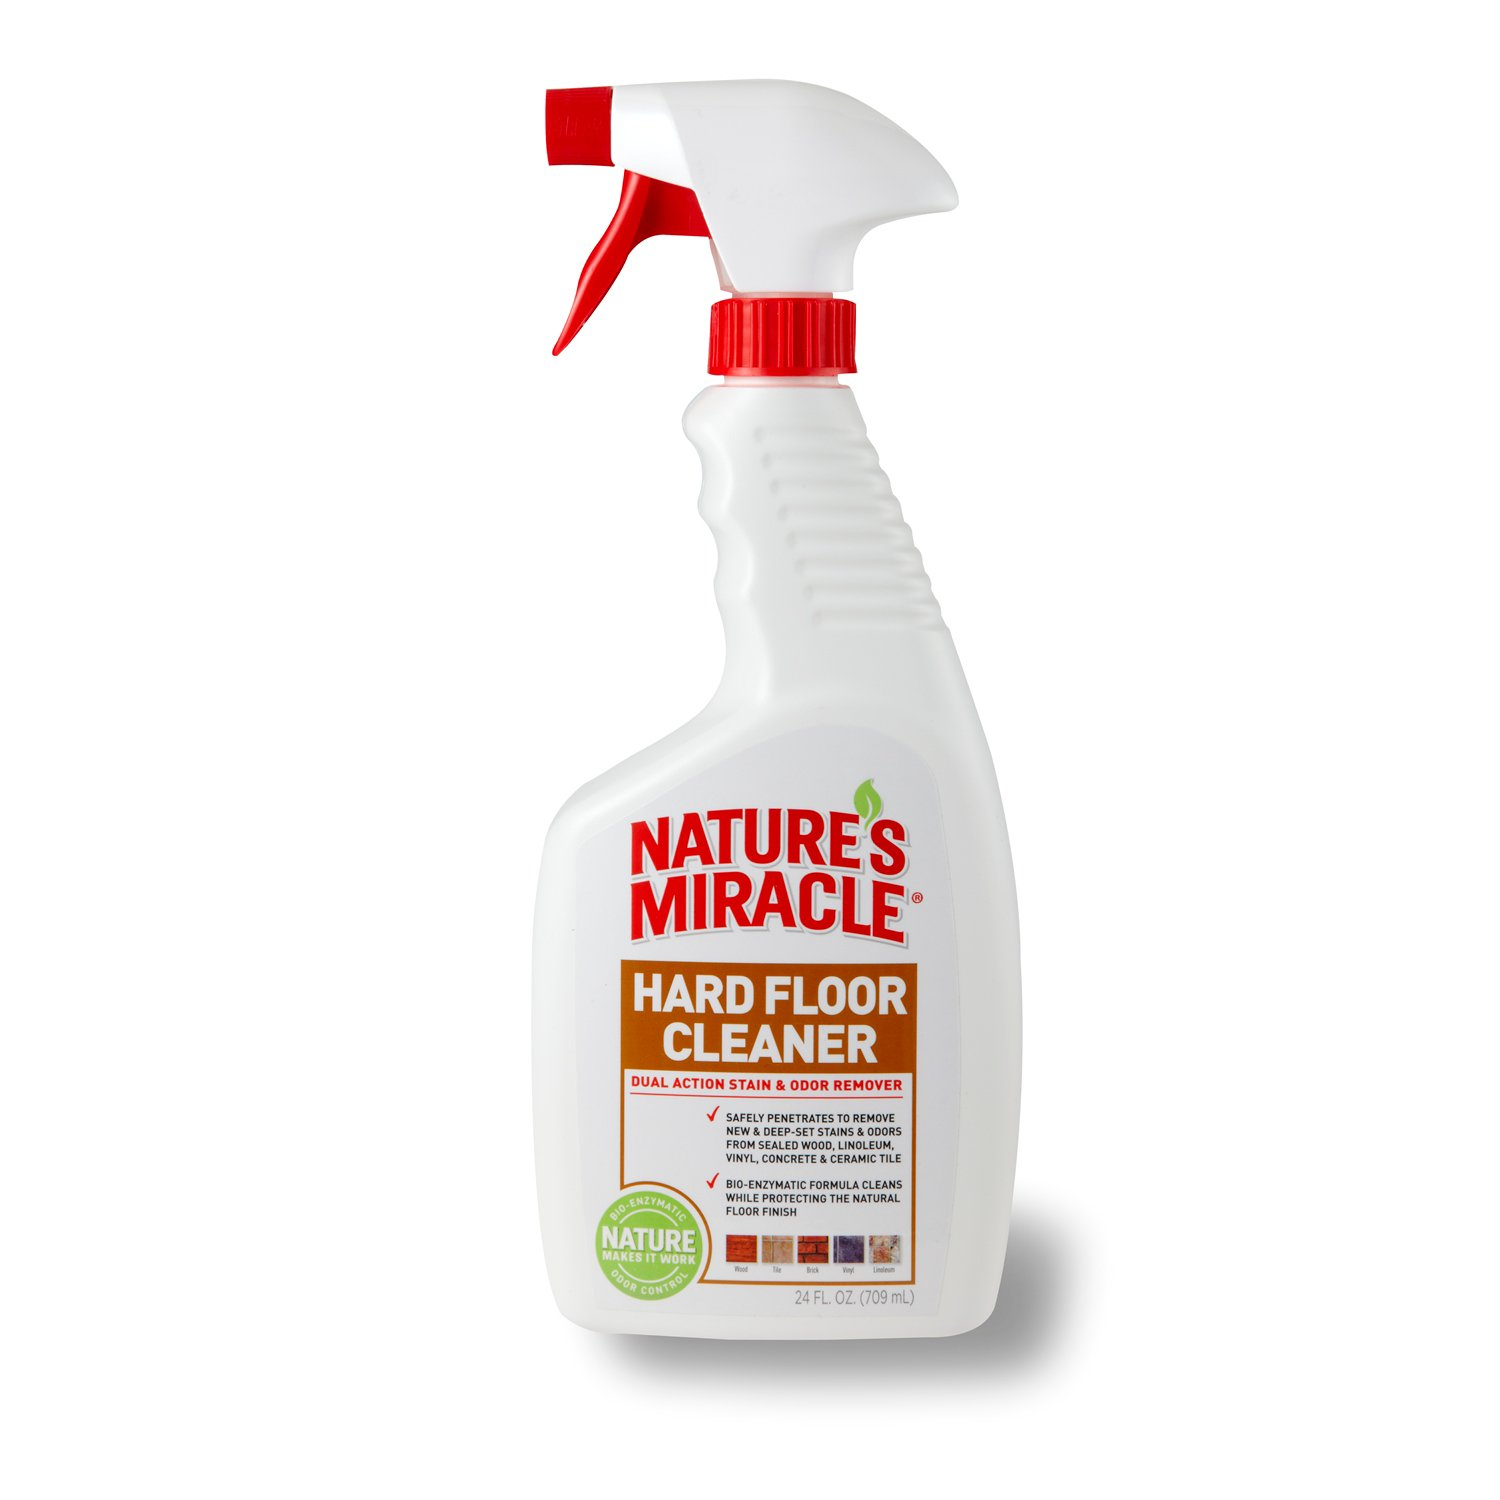 nature's miracle advanced dual-action hard floor stain & odor